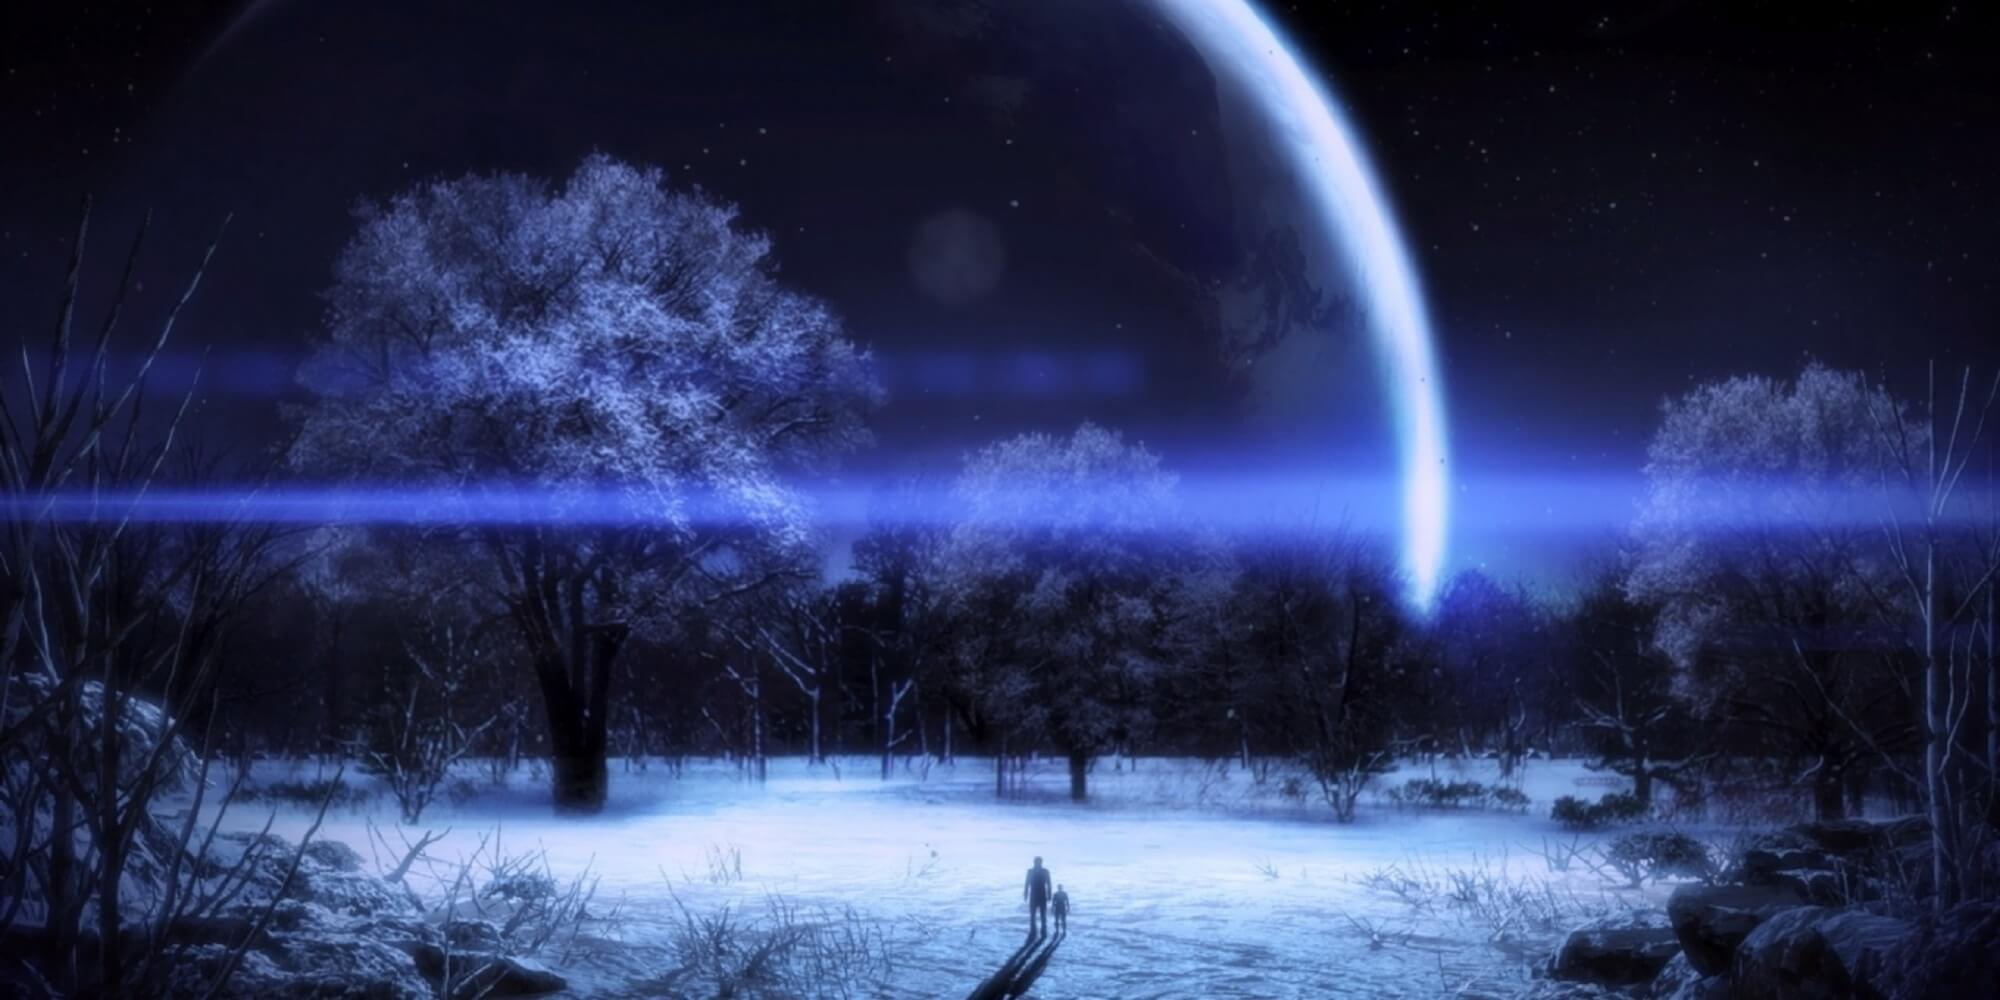 Mass Effect 3 Ending DLC Controversy Featured